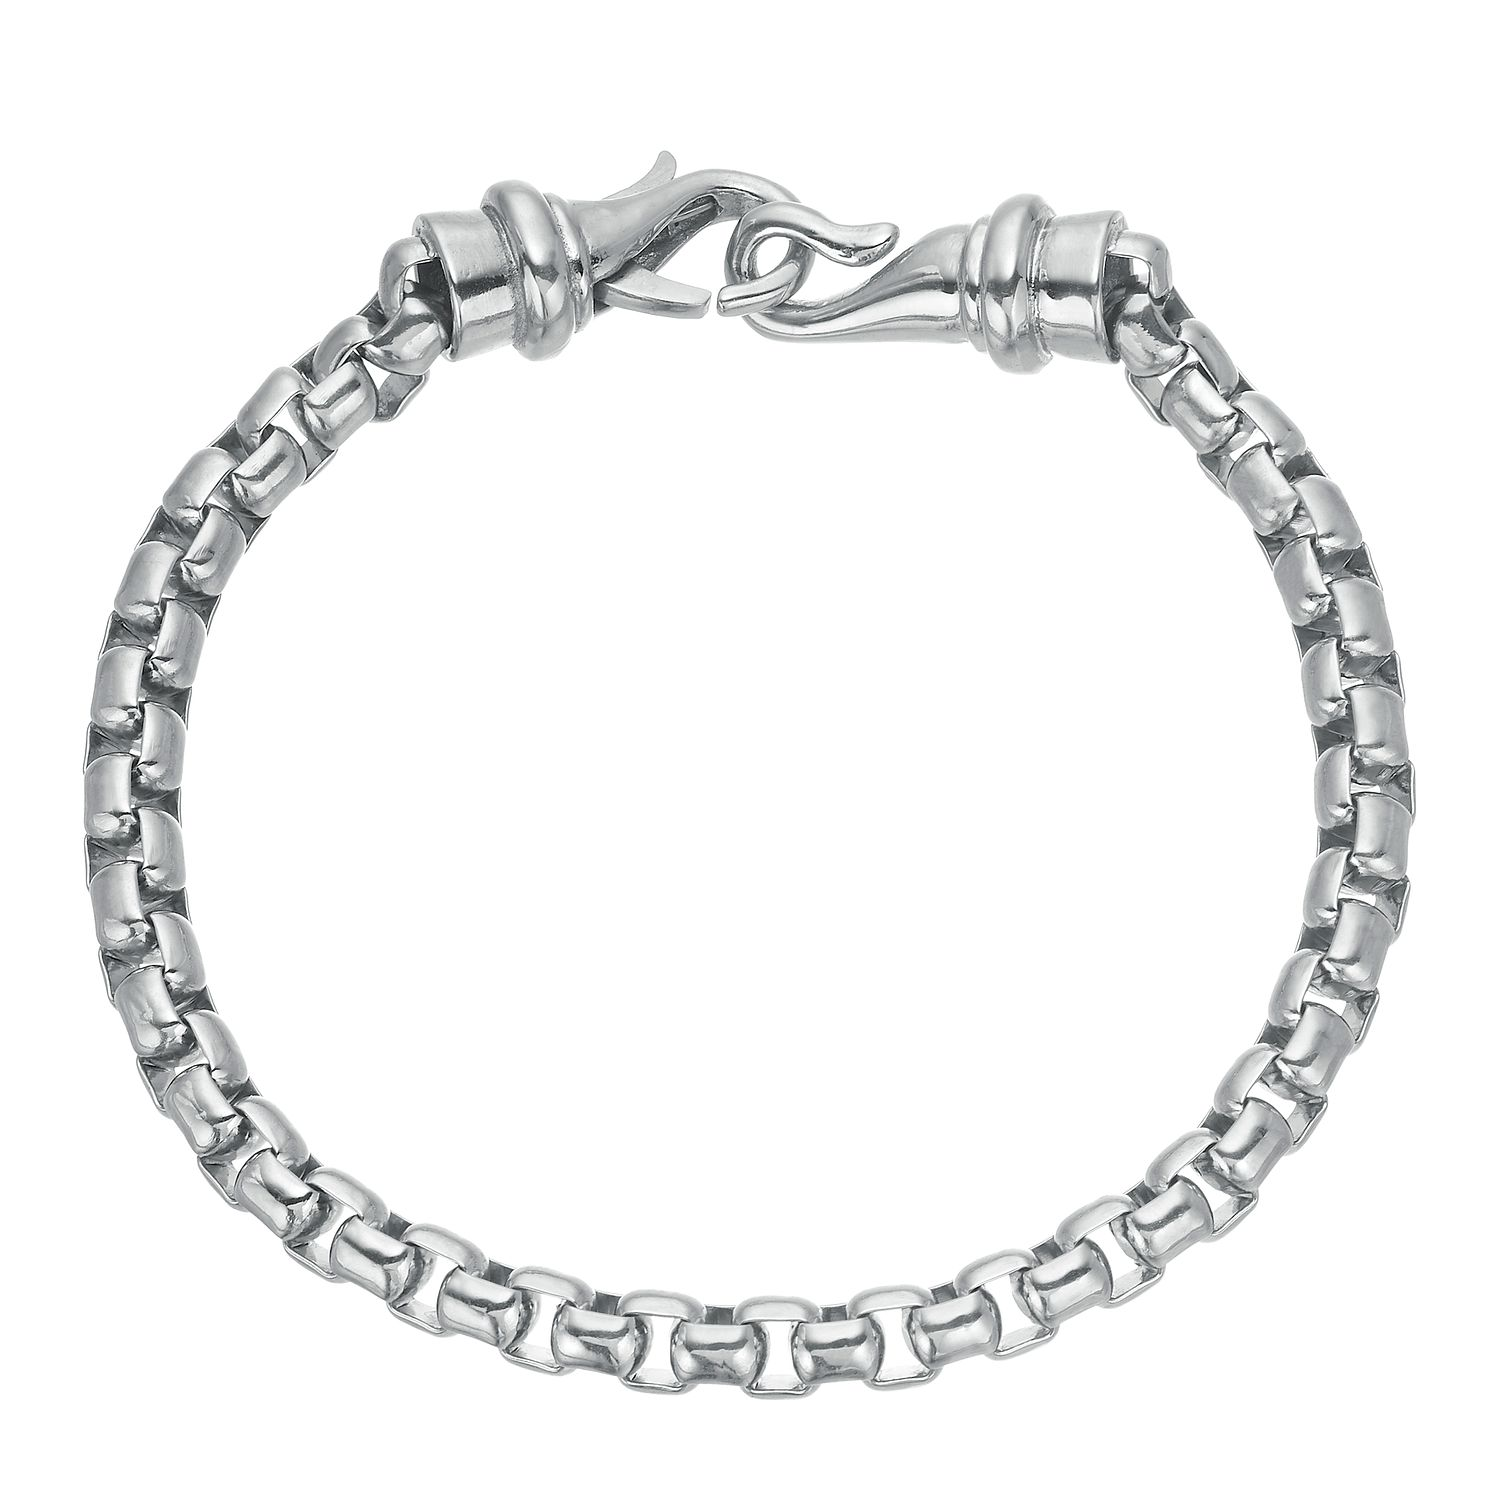 Stainless Steel 8.5 Inch Box Chain Bracelet - Product number 3939332